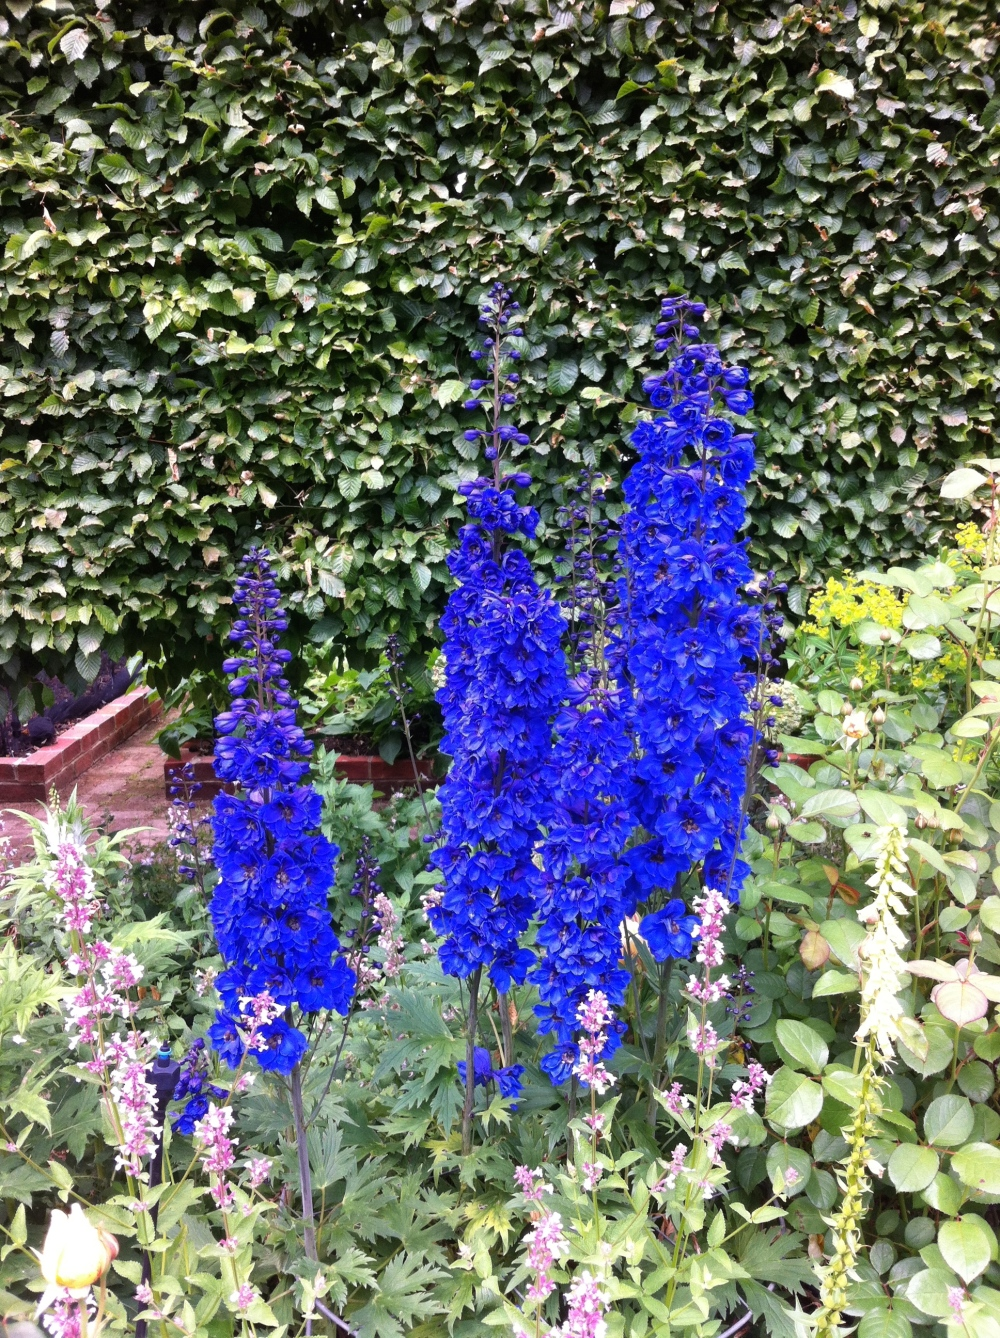 Delphiniums sown in Autumn may flower in their first season.